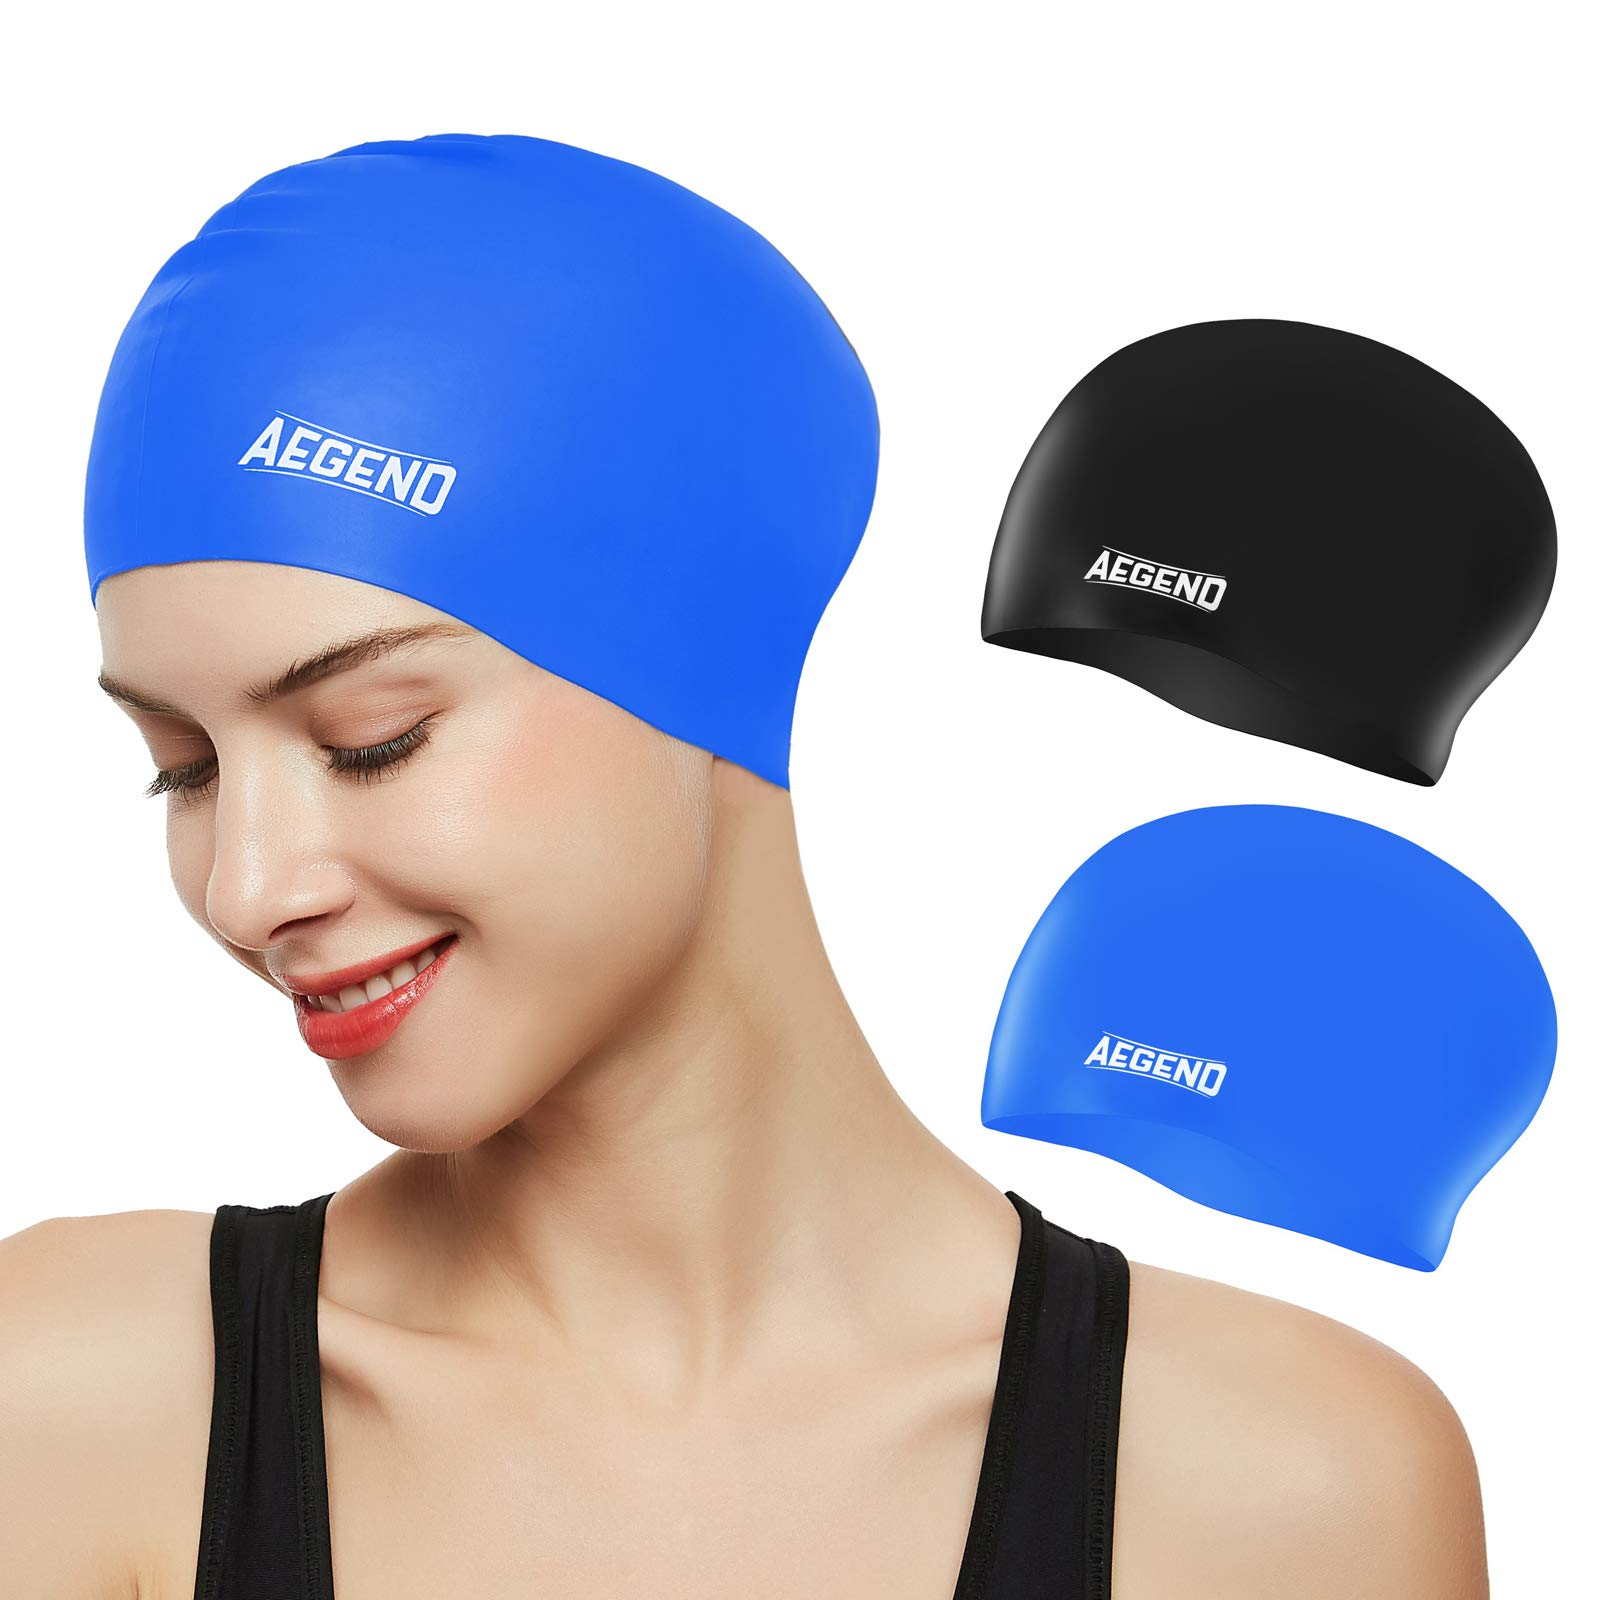 Aegend Swim Caps for Long Hair (2 Pack), Durable Silicone Swimming Caps for  Women Men Adults Youths Kids, Easy to Put On and Off, 4 Colors- Buy Online  in India at desertcart.in.